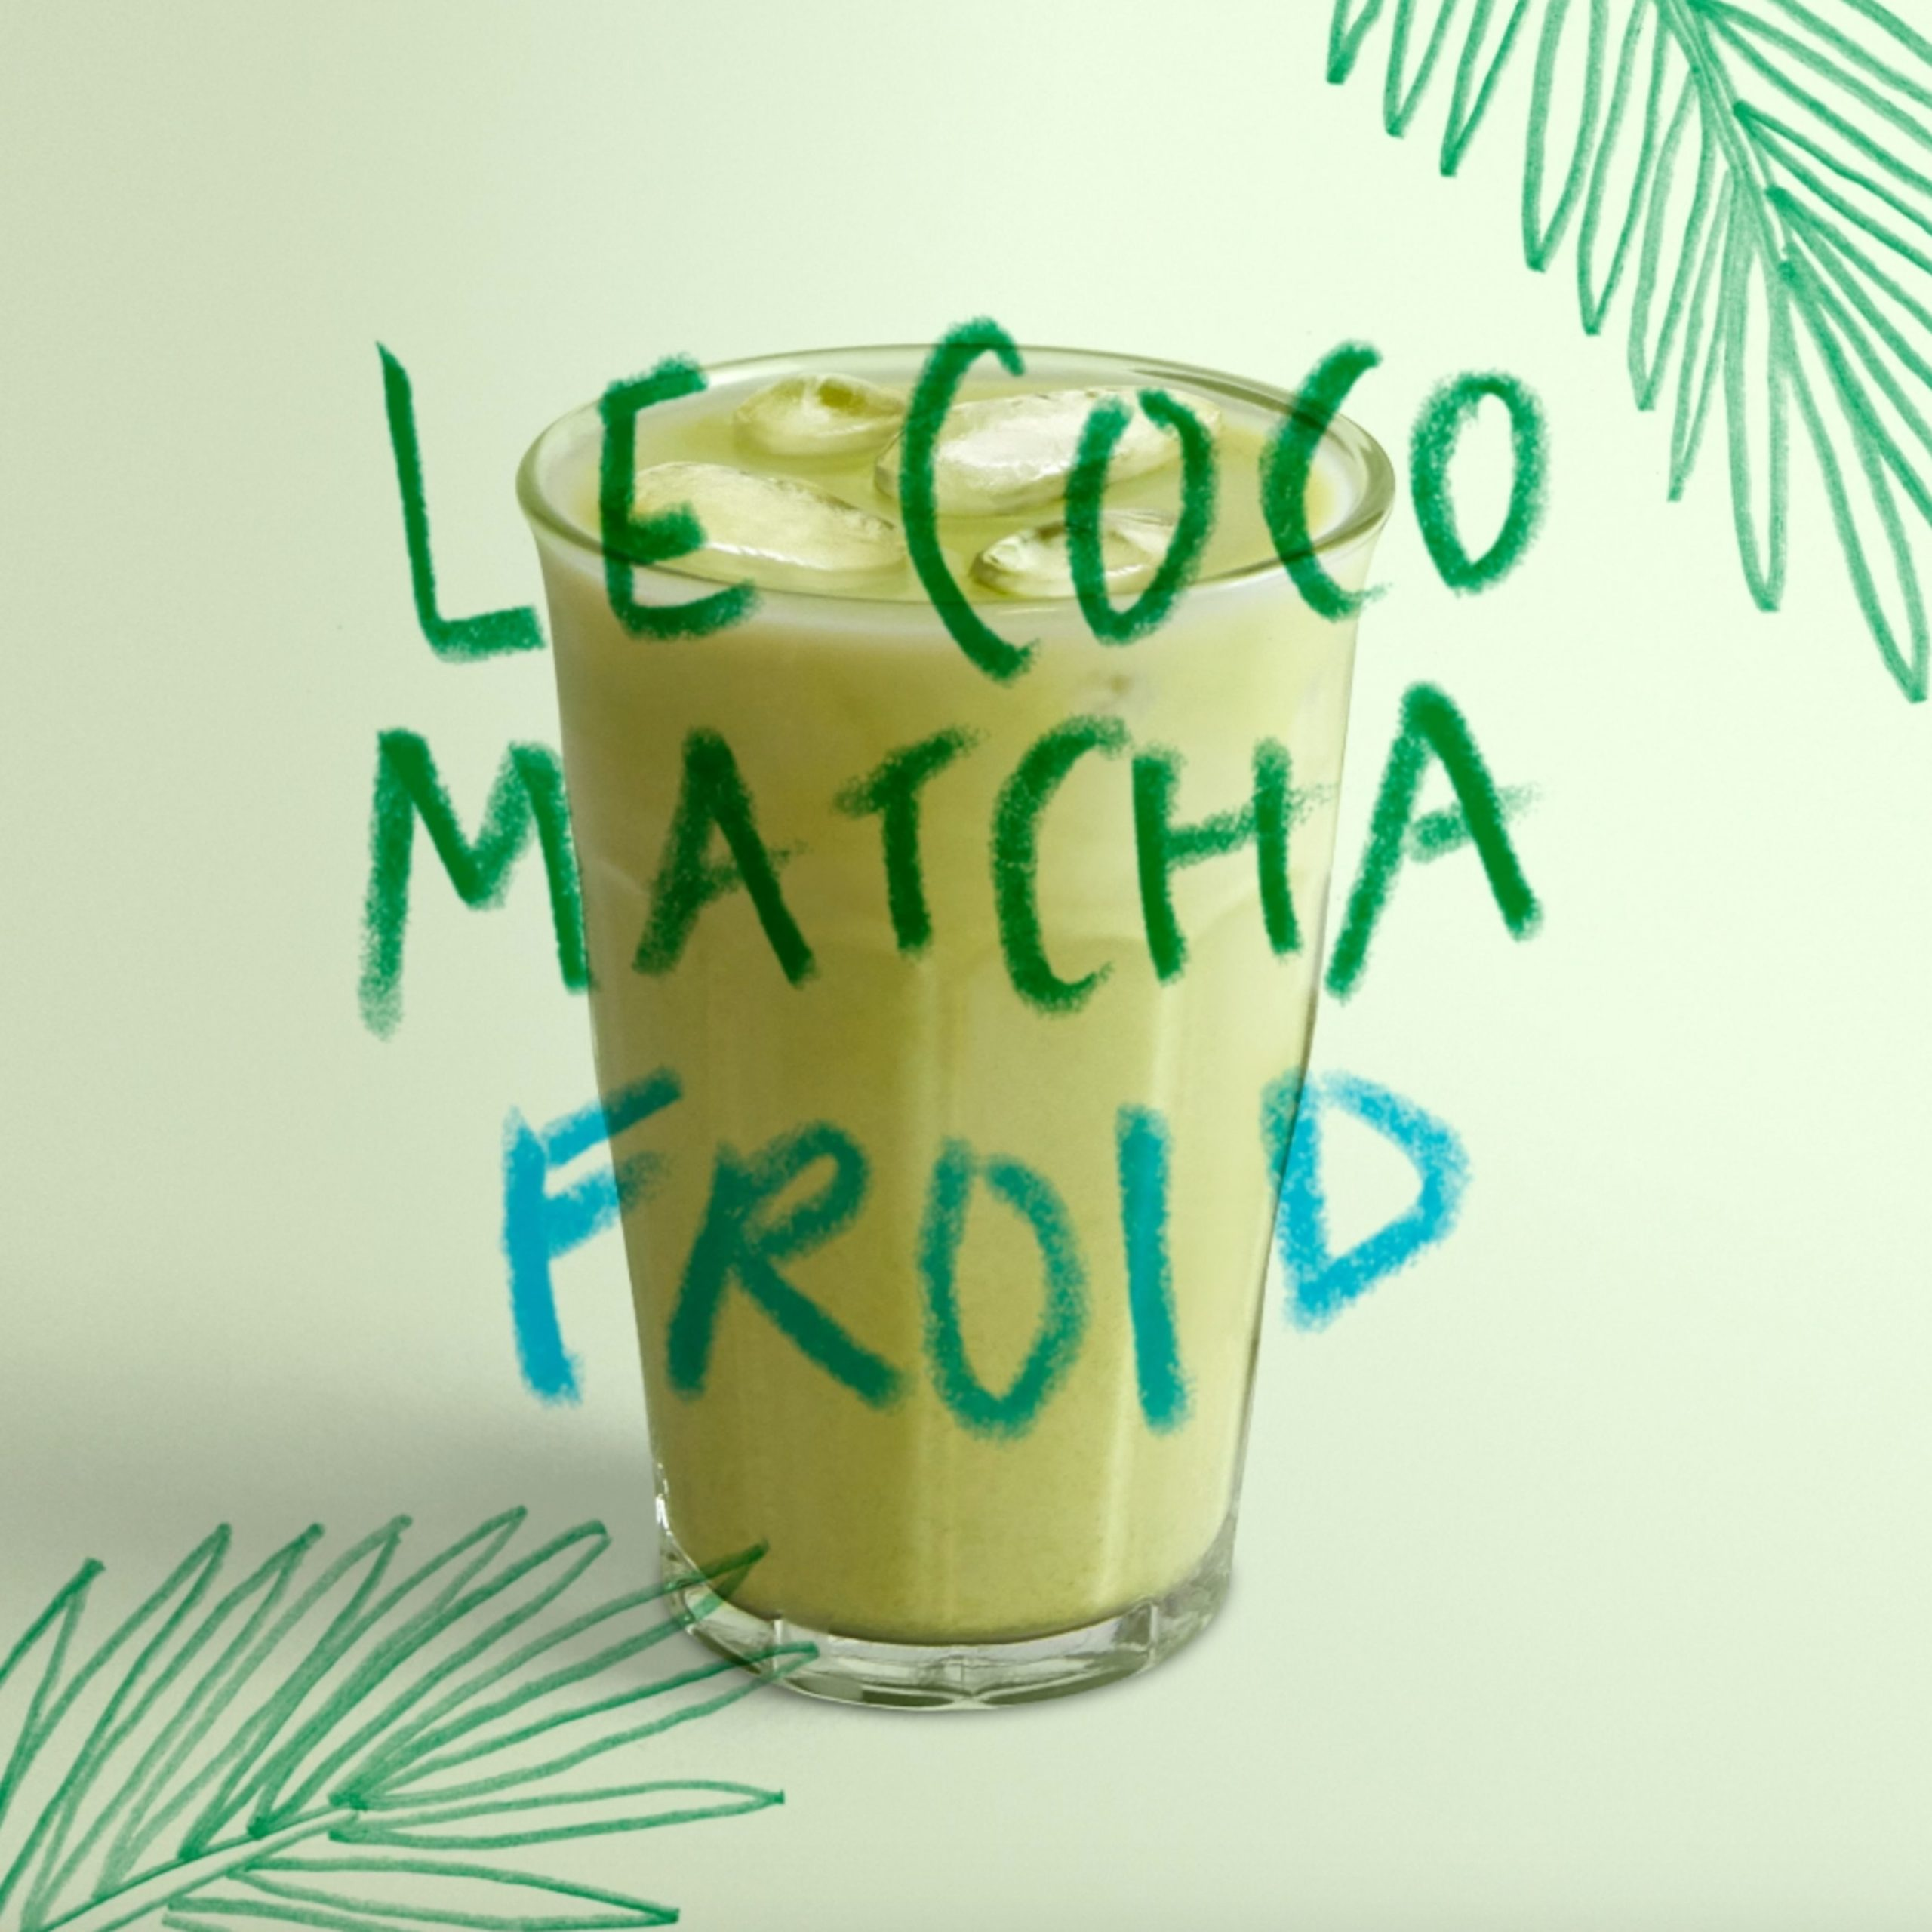 Le Coco Matcha froid archi froid